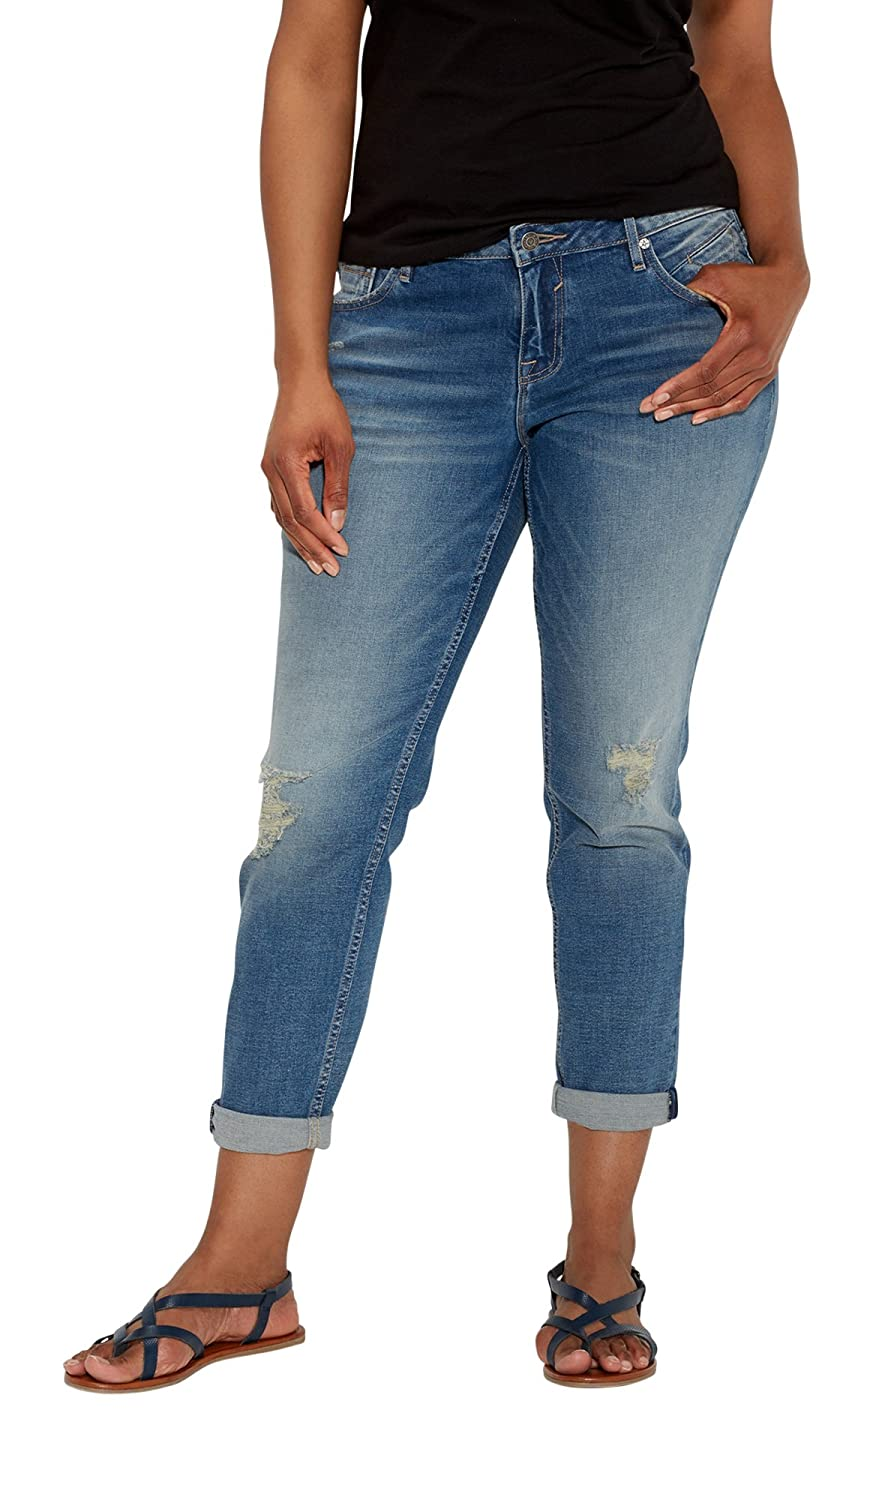 Maurices Women's Vigoss Plus Size Tomboy Destructed Jeans In Medium Wash